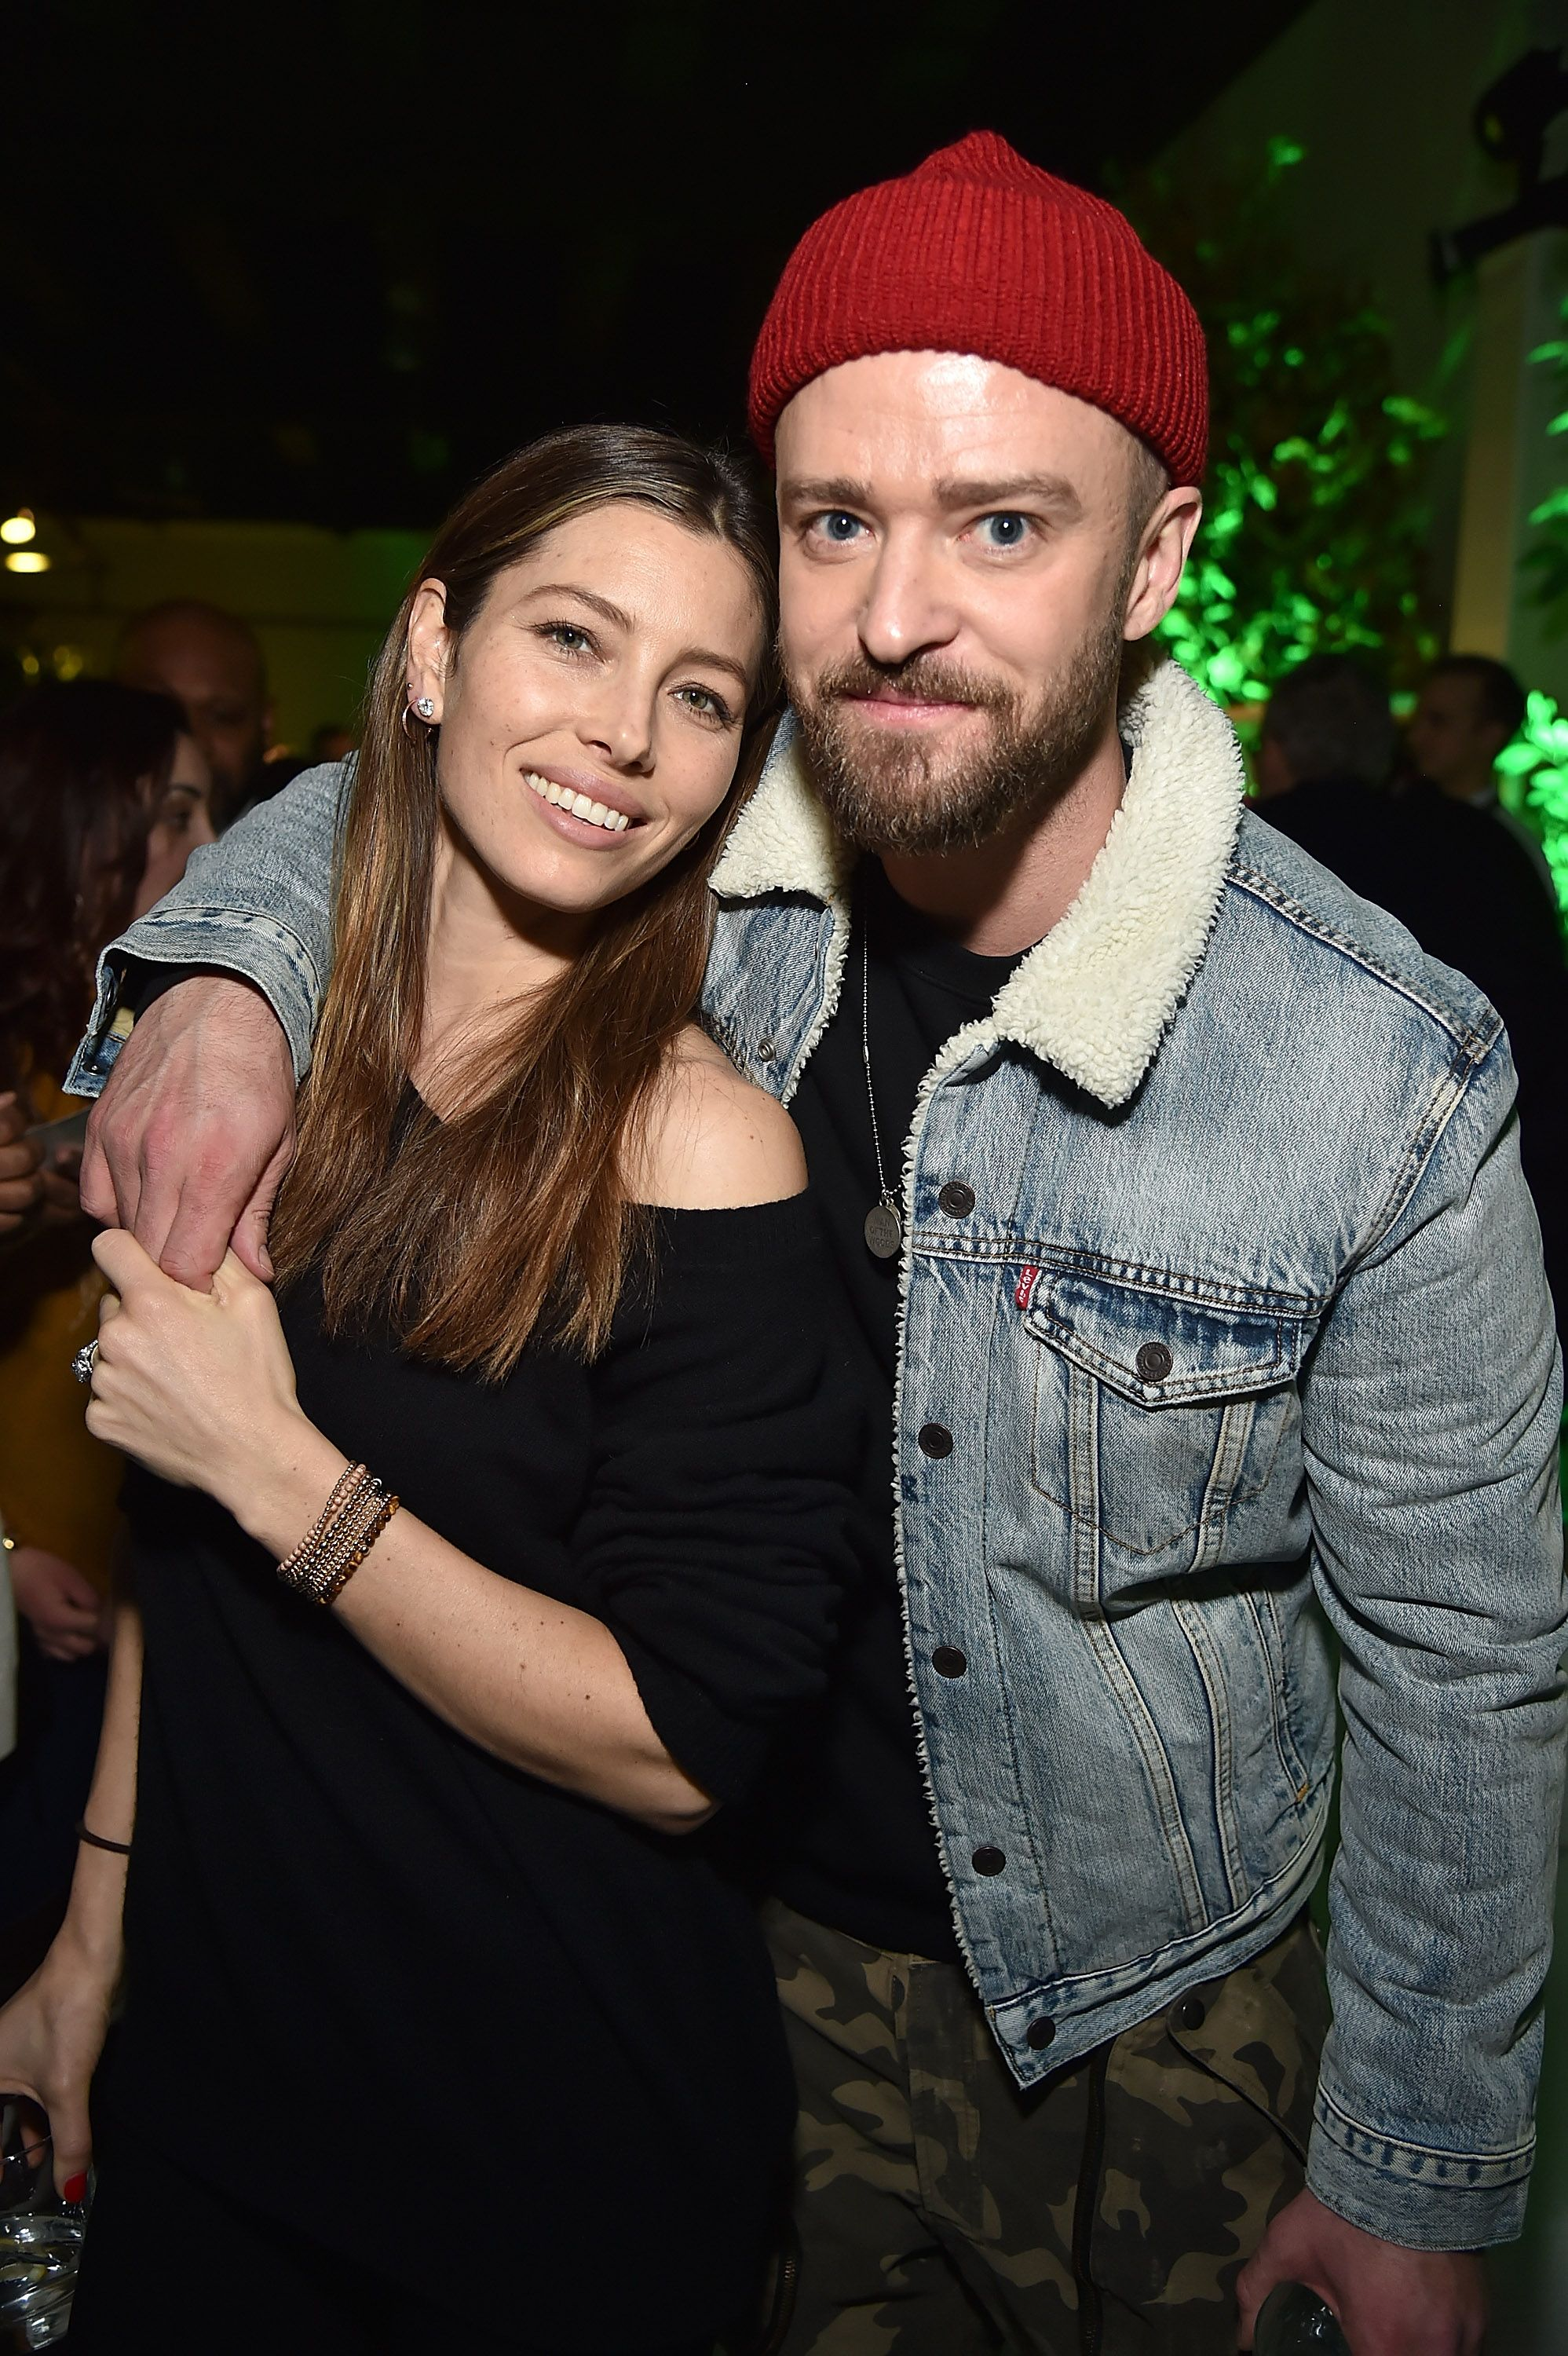 Jessica Biel Will Reportedly Stay With Justin Timberlake and Doesn't Think He Cheated With Alisha Wainwright